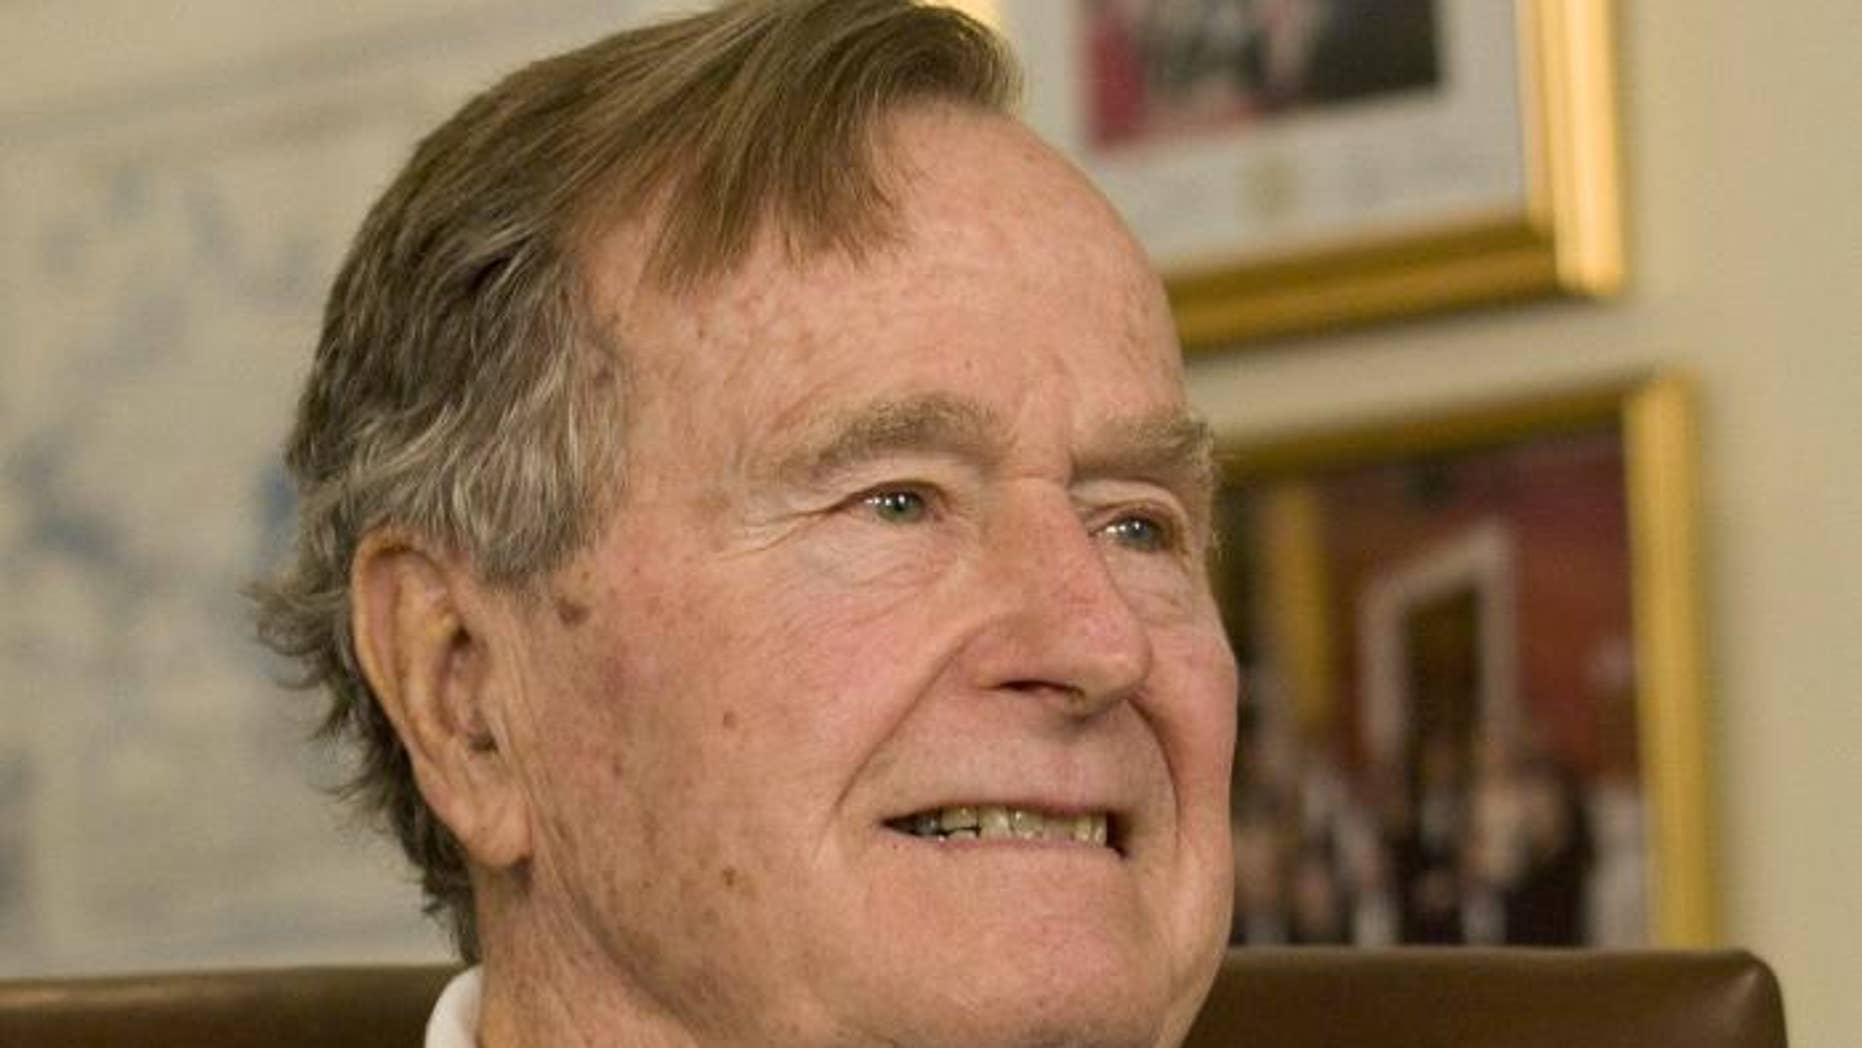 George H.W. Bush the 41st president of the United States died Friday at age 94